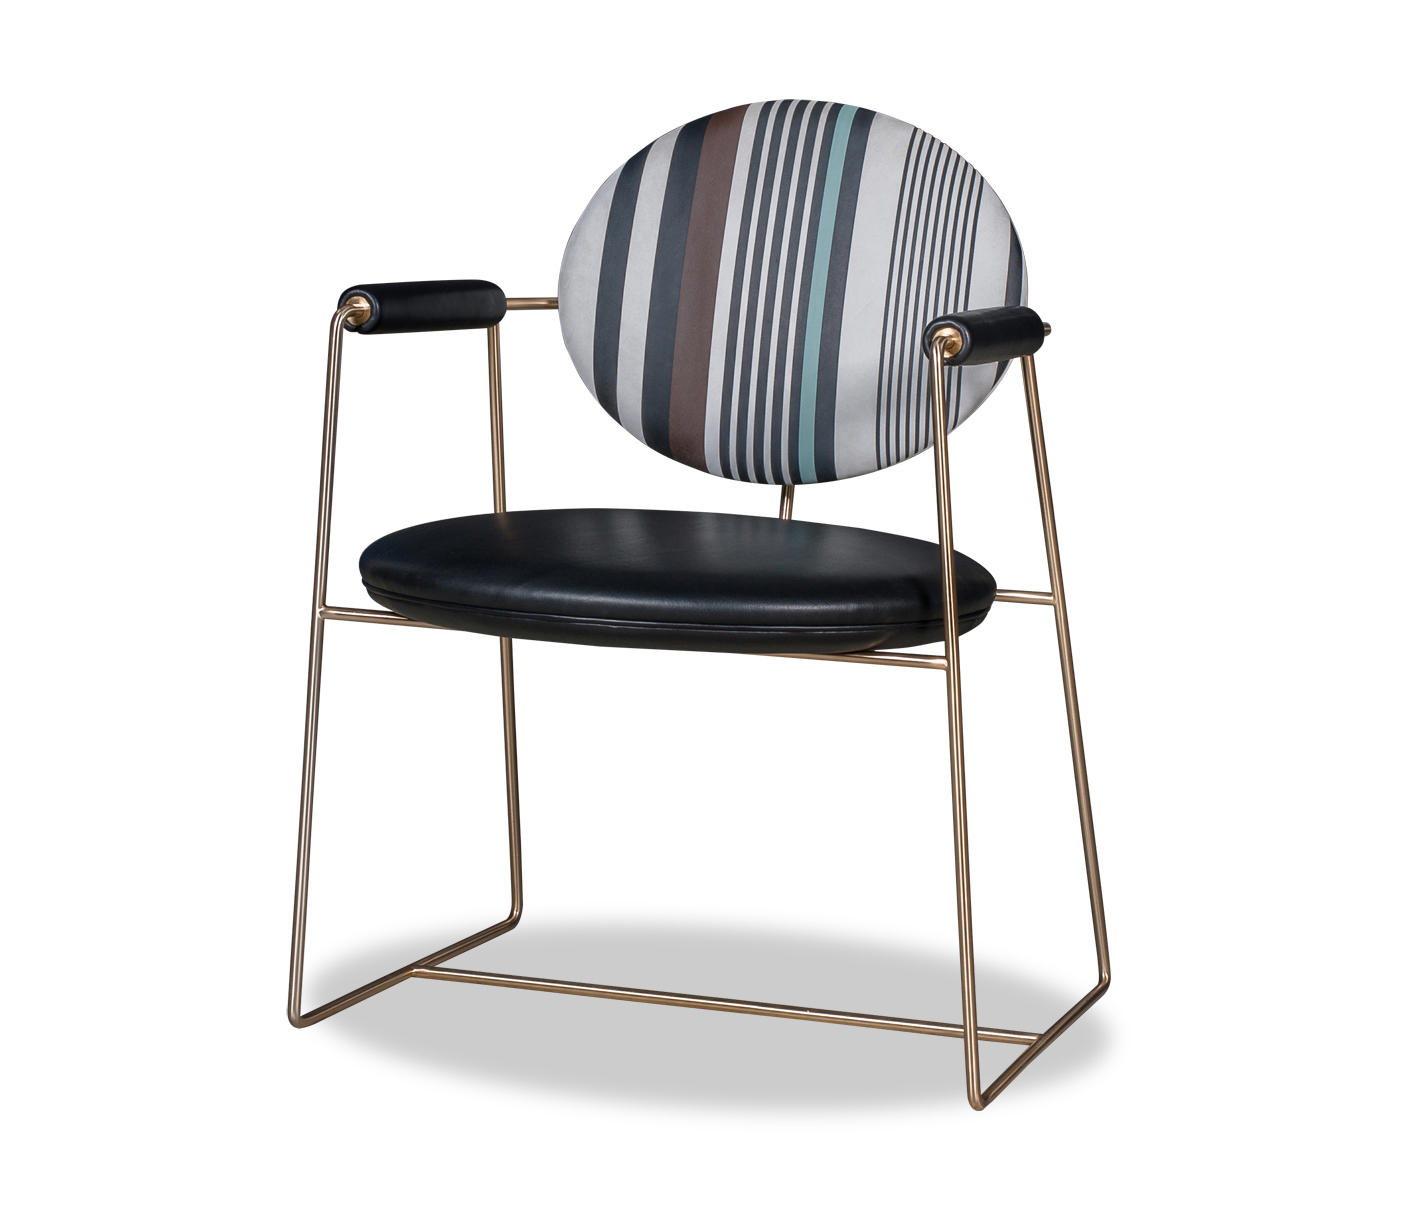 GEMMA | S.E. PRINTED Chair By Baxter | Chairs ...